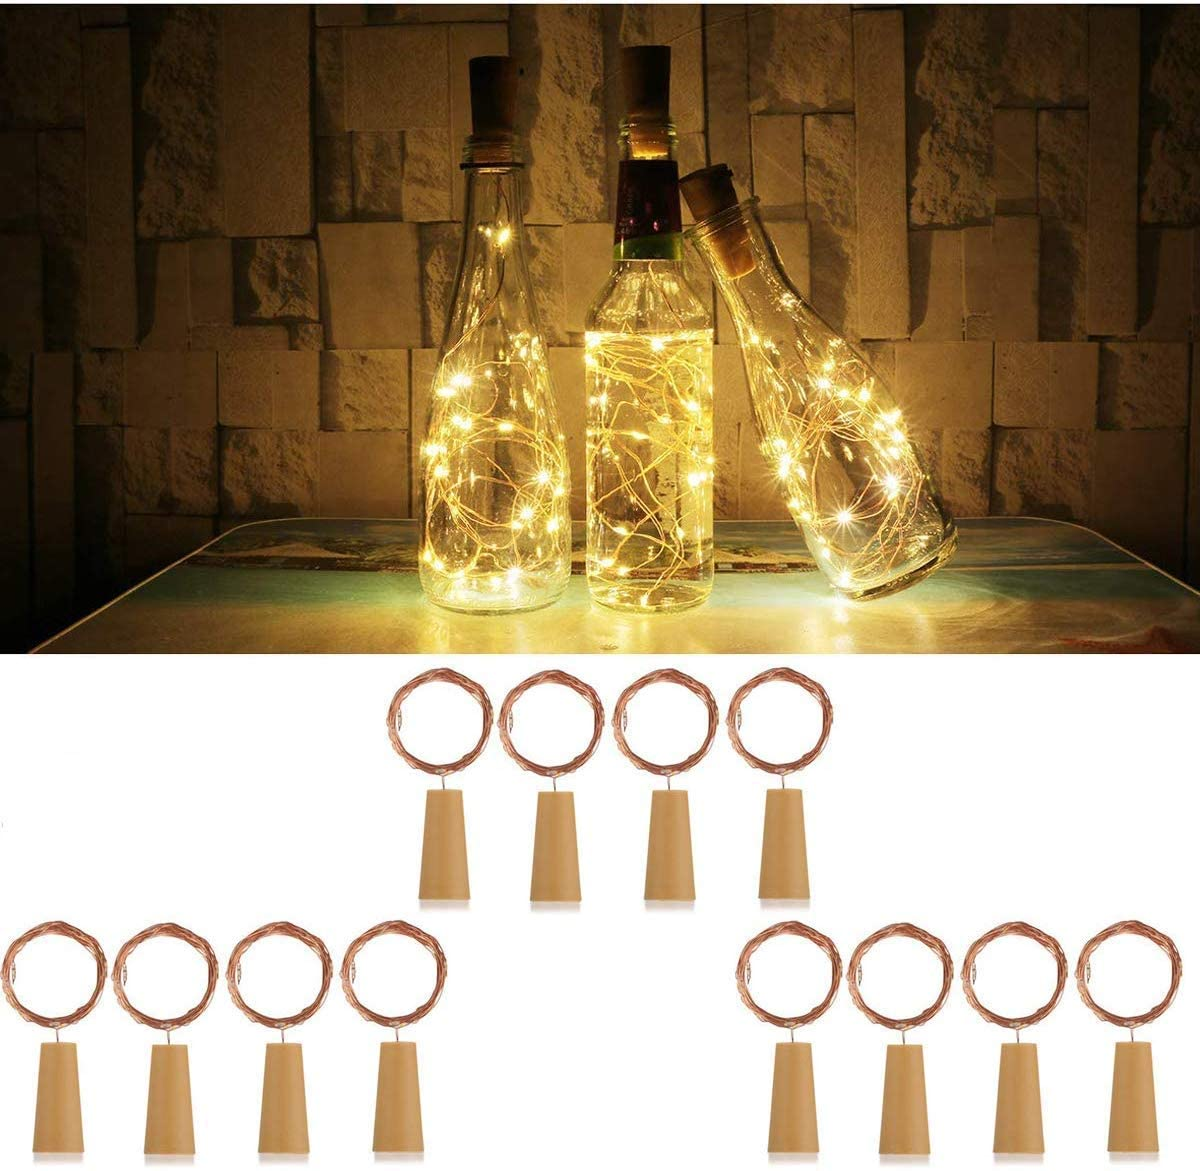 DOOK Wine Bottle Lights with Cork,6.6ft 20 LED Battery Operated String Lights,Warm White Decorative Fairy Lights,Mini Copper Wire Lights for Bedroom Decor,Christmas Party Wedding Decorations, 12 Pack